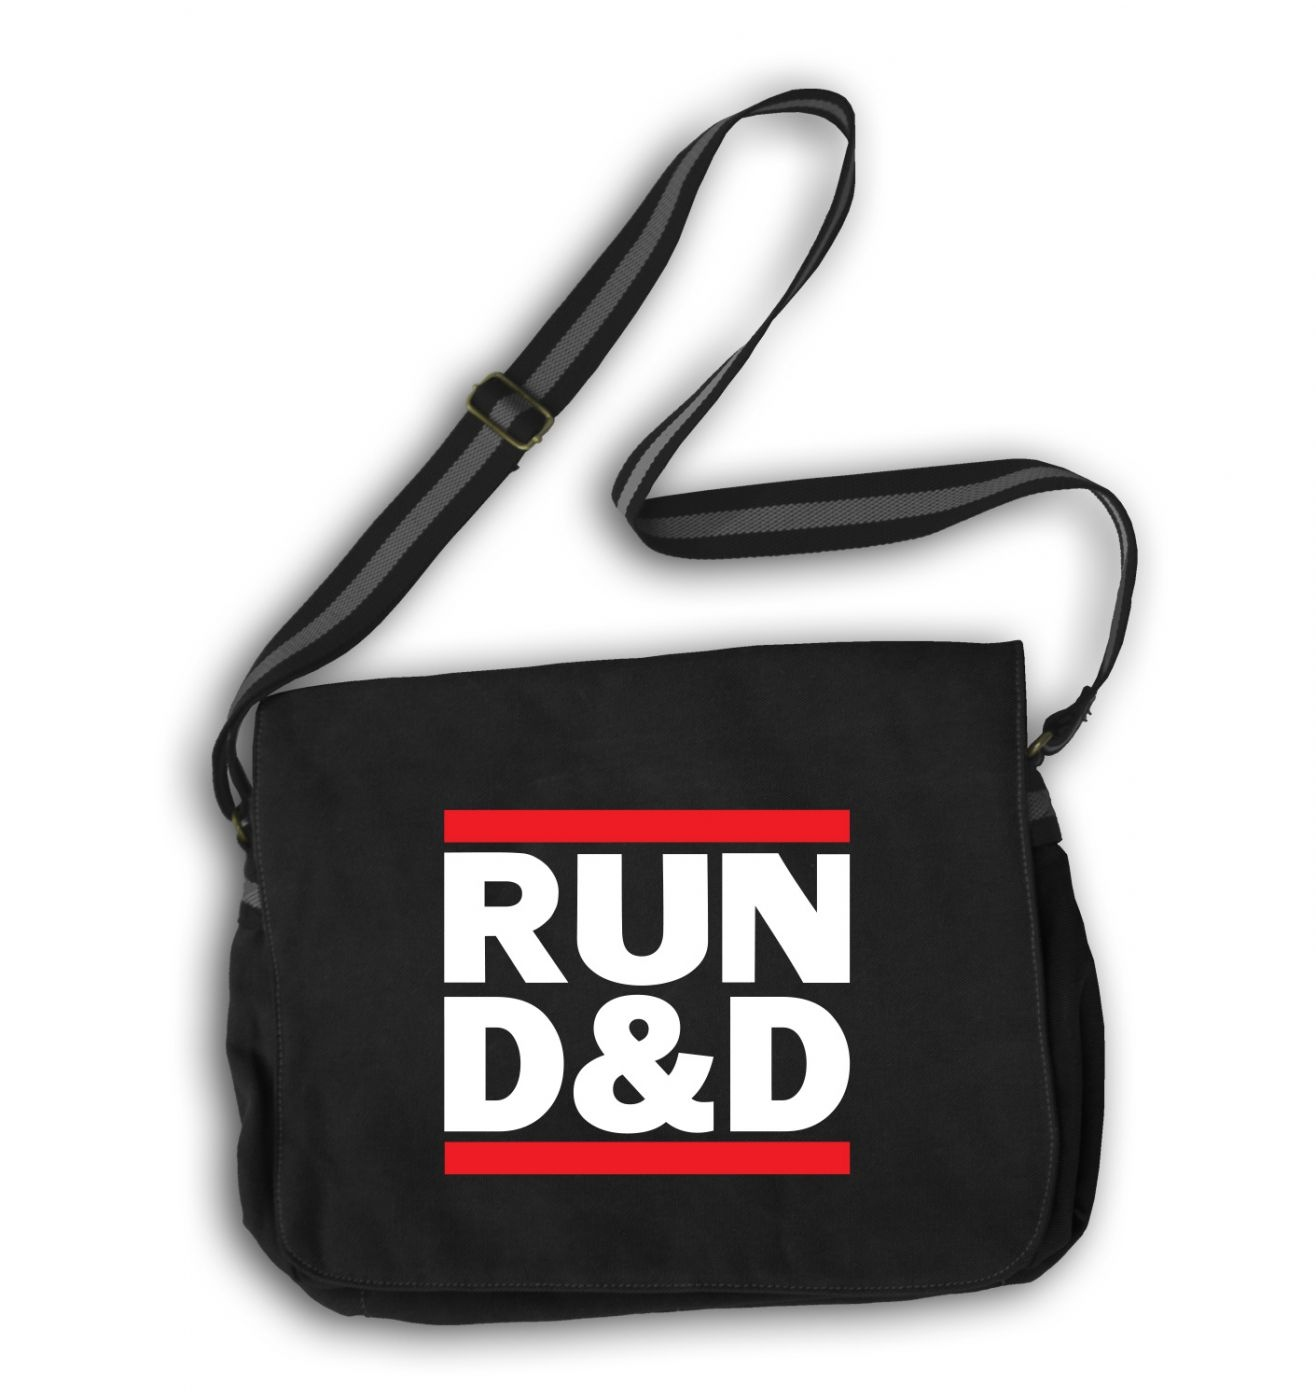 RUN D&D messenger bag - RUN DnD bag - cool bag for RPG gamers